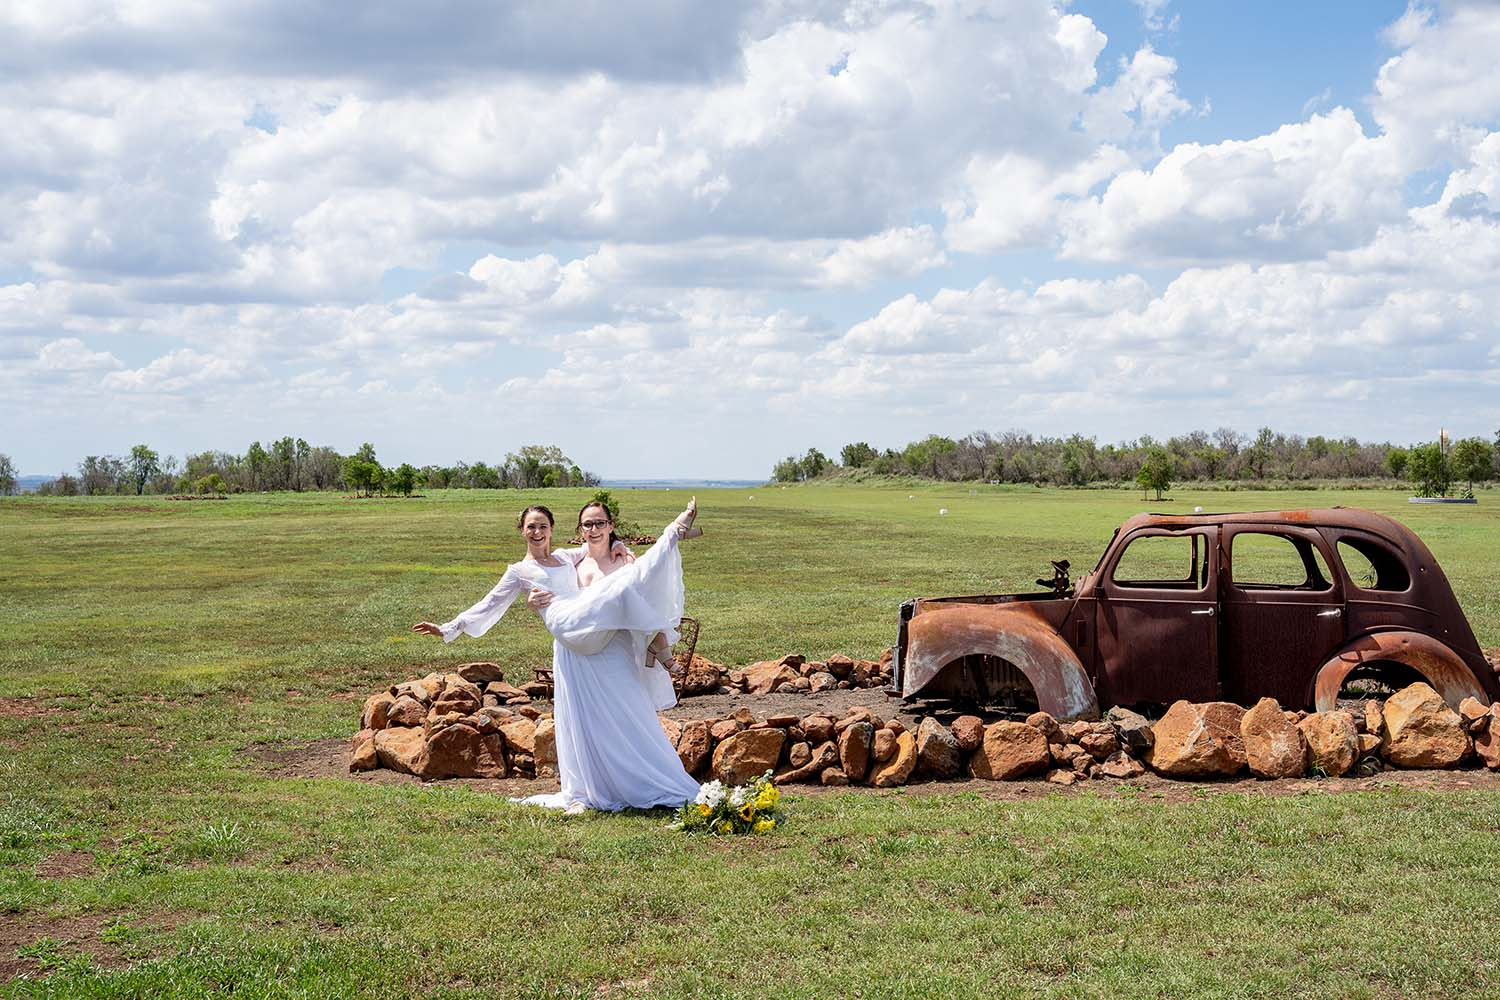 Wedding Photography - Bides in front of rustic car